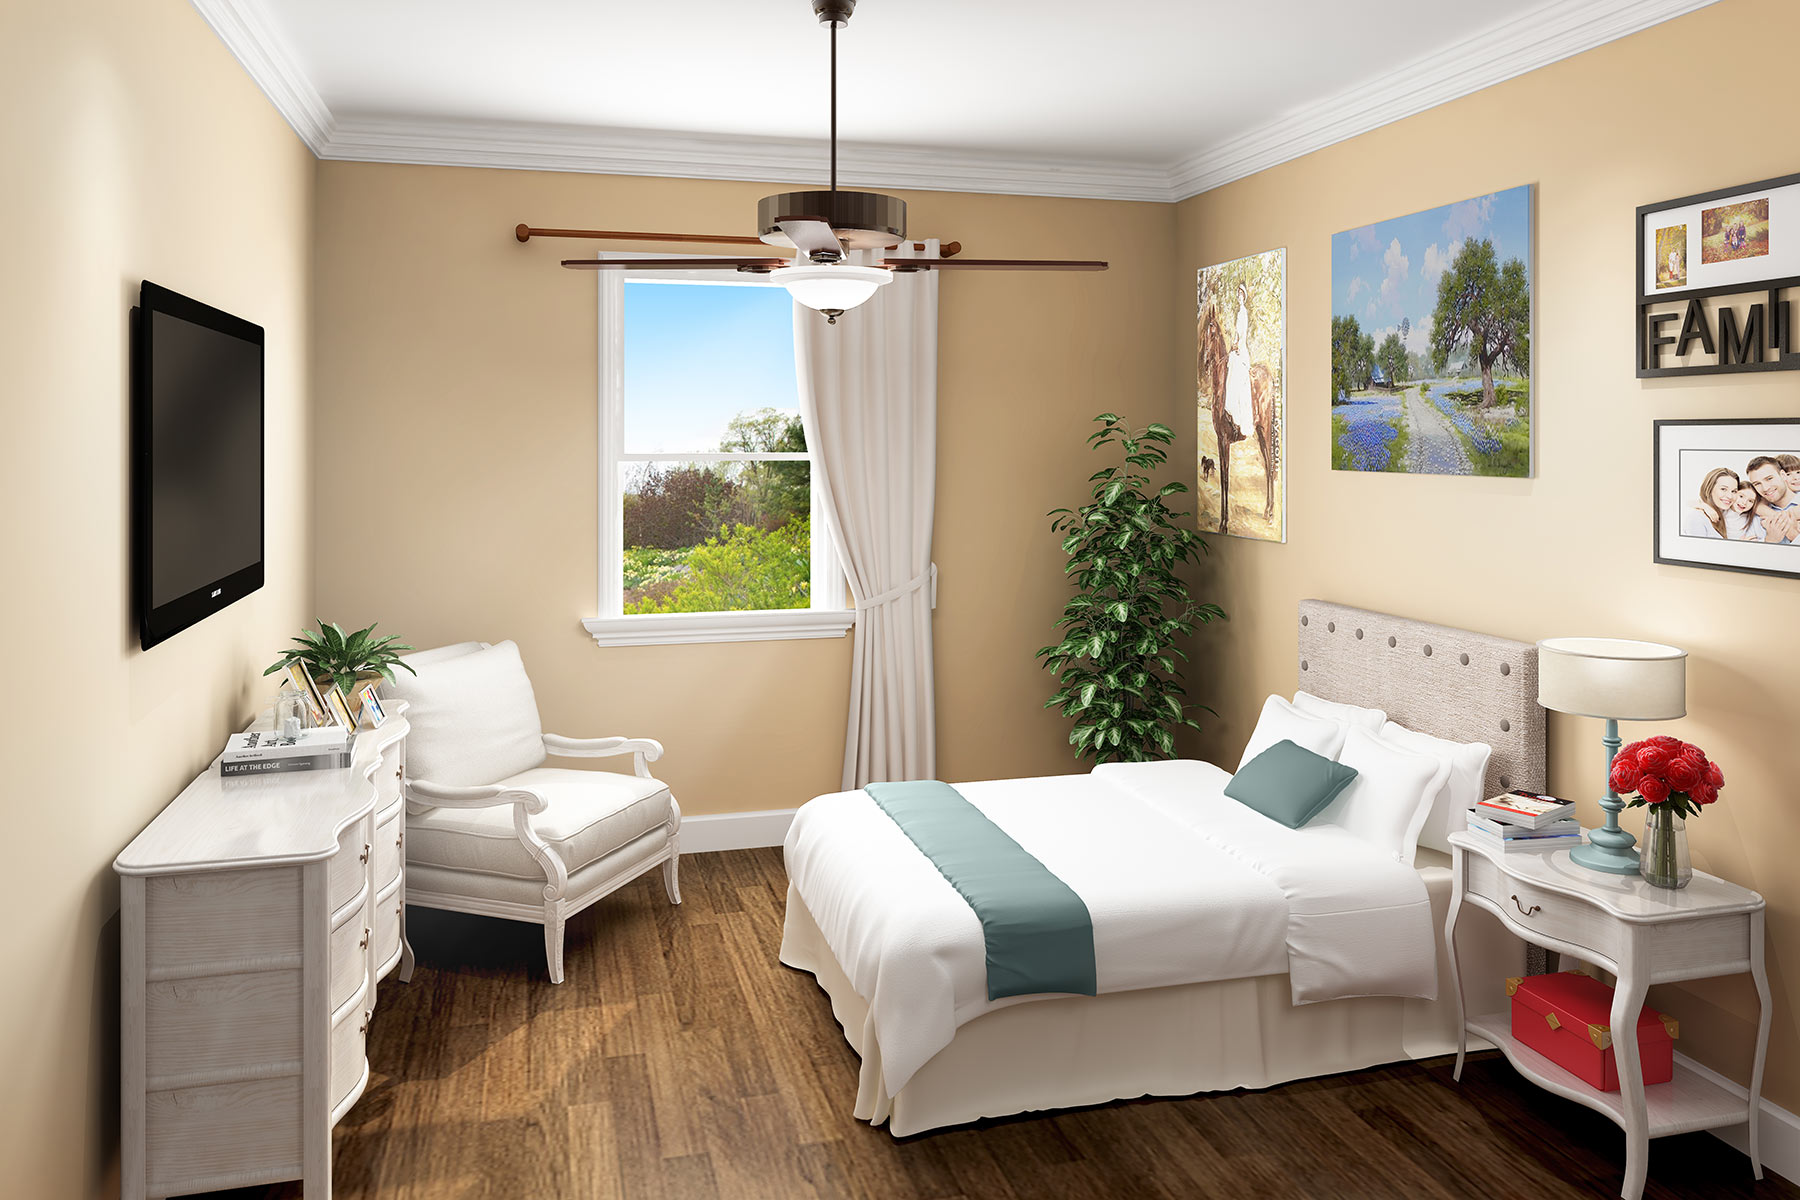 Serenity Oaks Bedroom | Serenity Oaks Assisted Living & Memory Care, Respite Care in Live Oaks, San Antonio, Texas